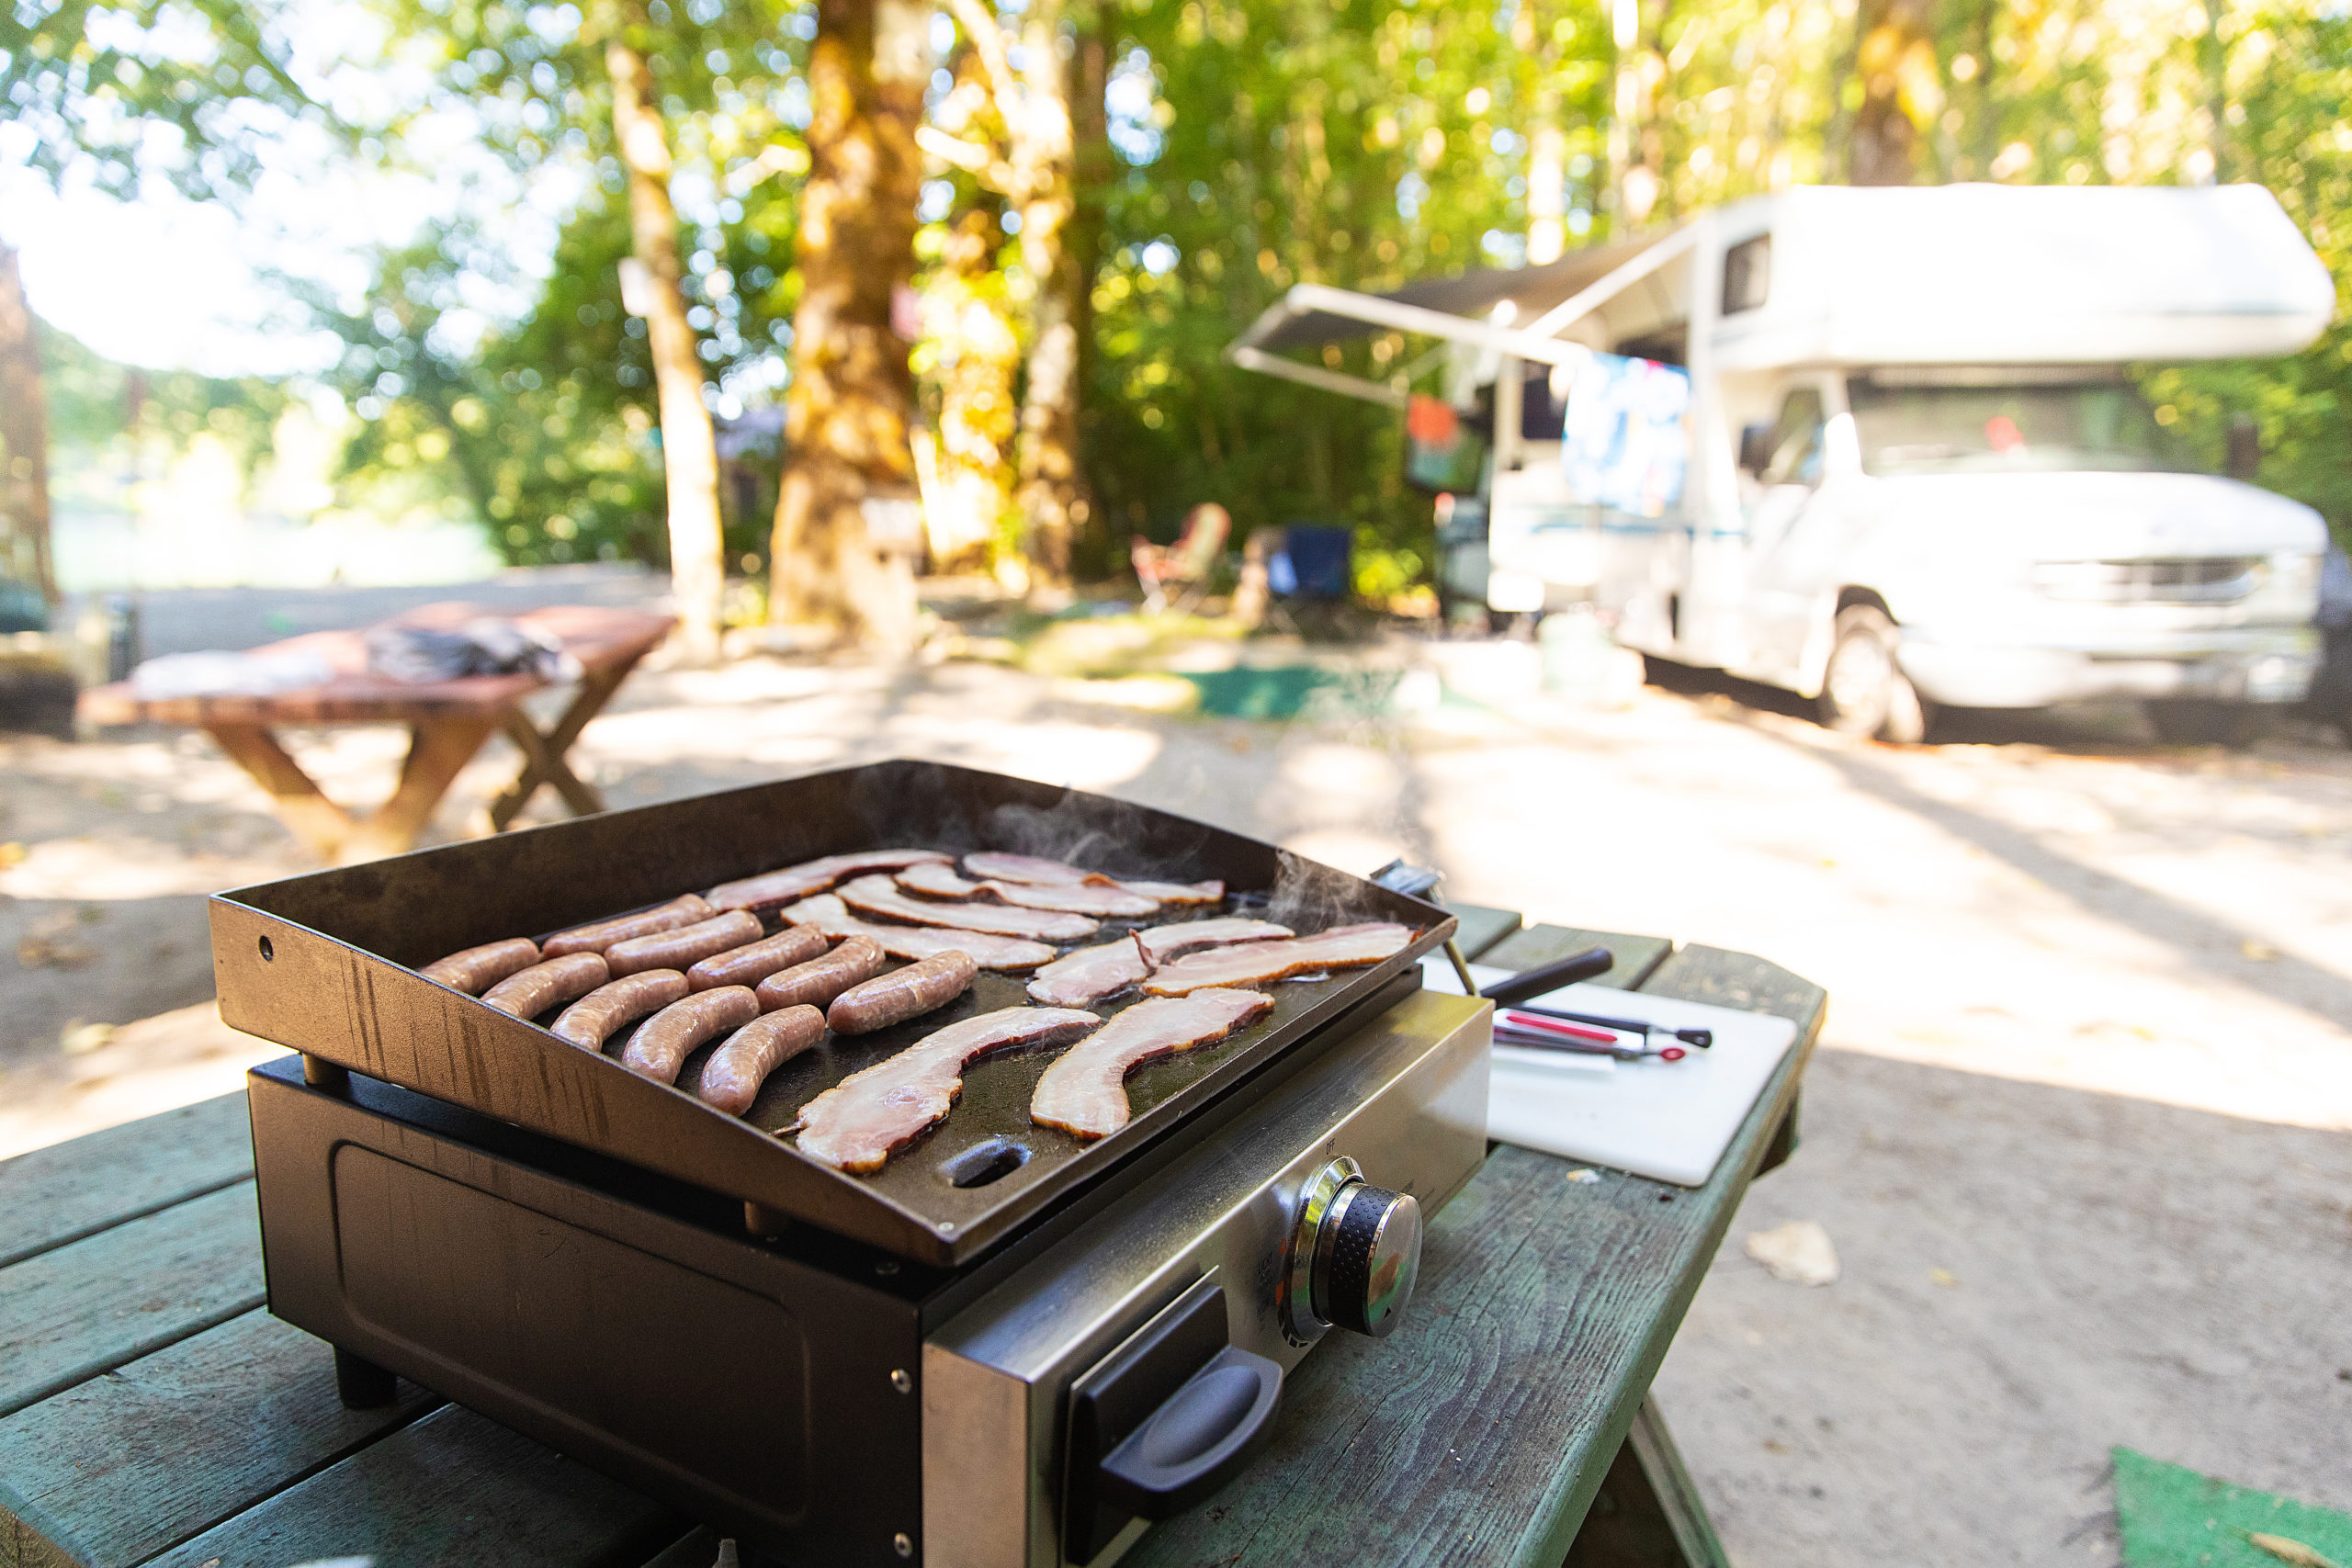 Bacon and sausage on a flat grill at a camp site